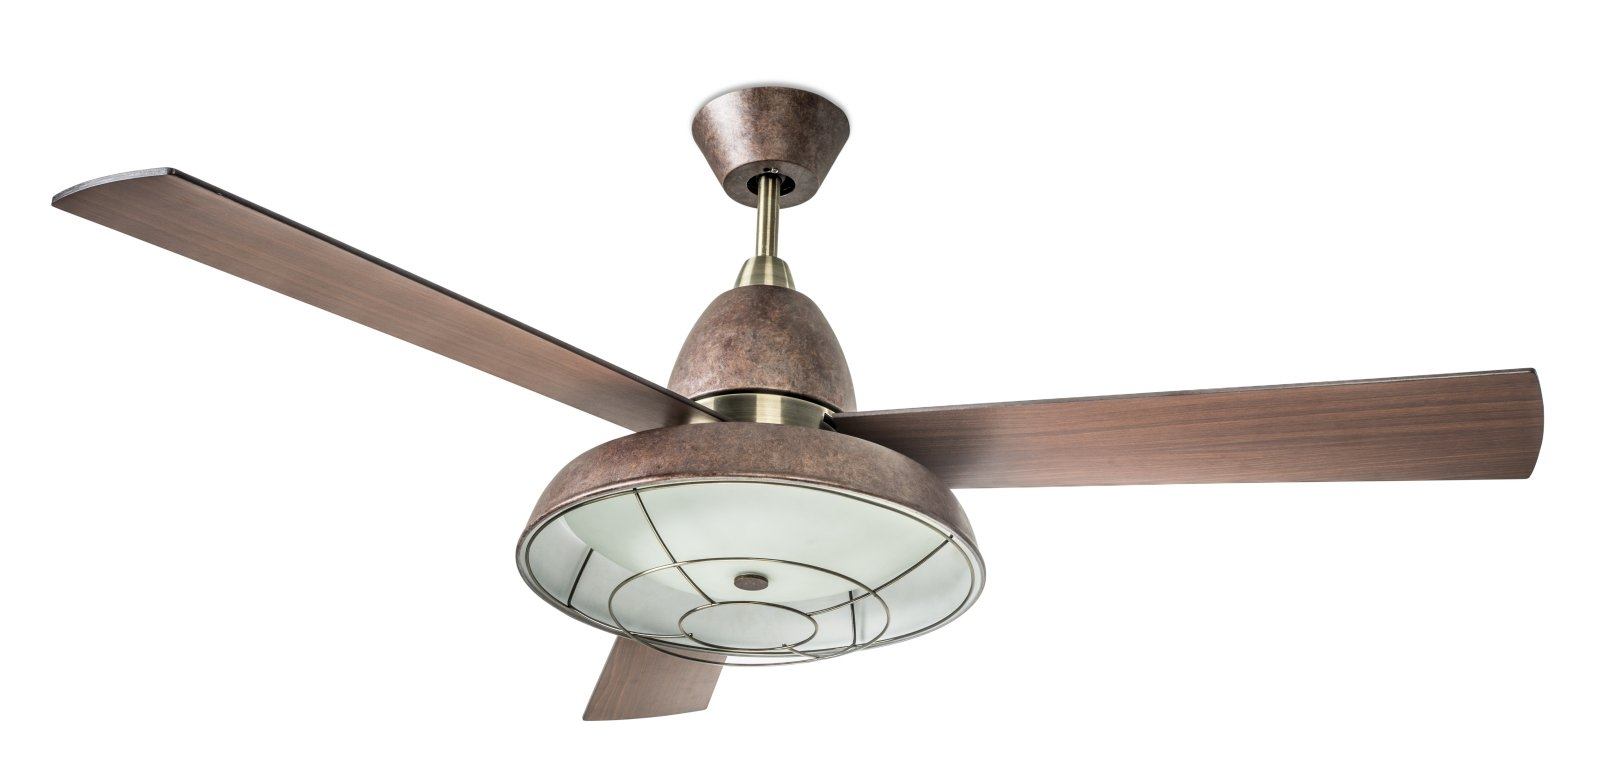 Vintage+Ceiling+Fans Retro Ceiling Fan with Caged Light